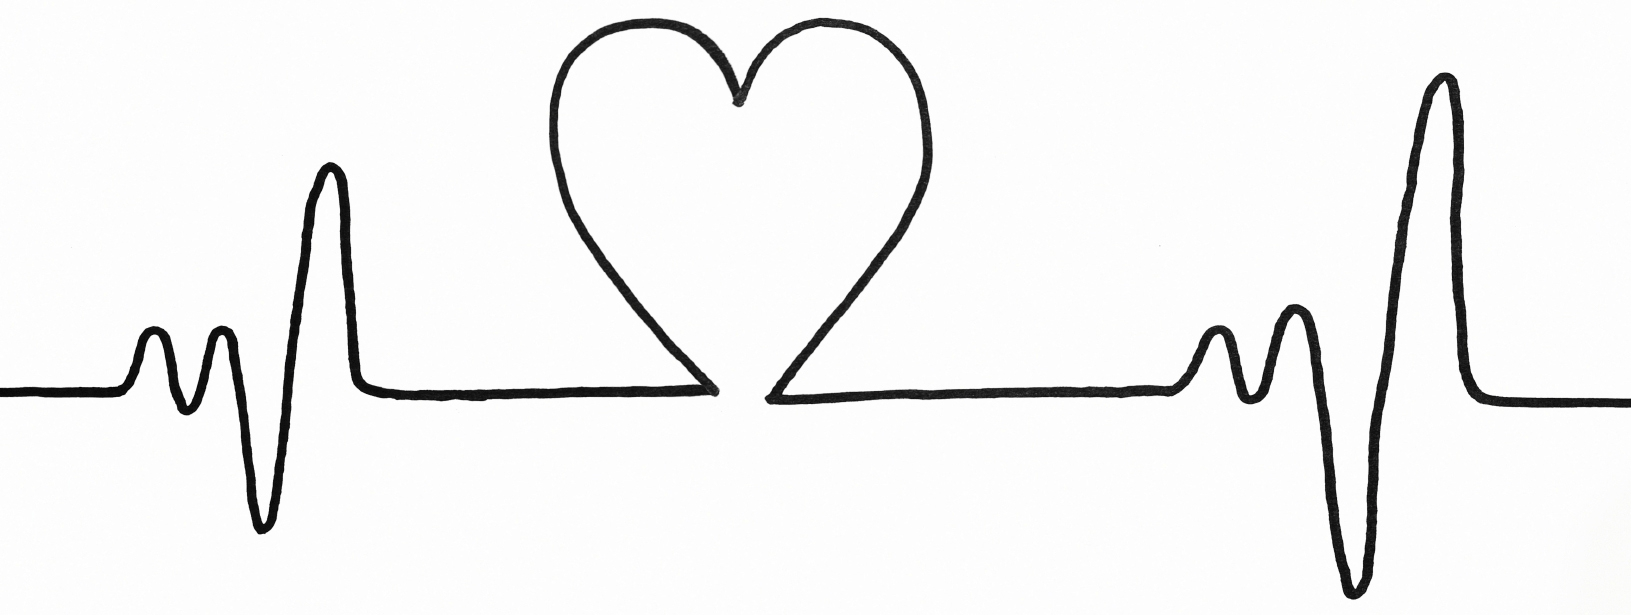 Heartbeat Line Drawing: Images Heartbeat